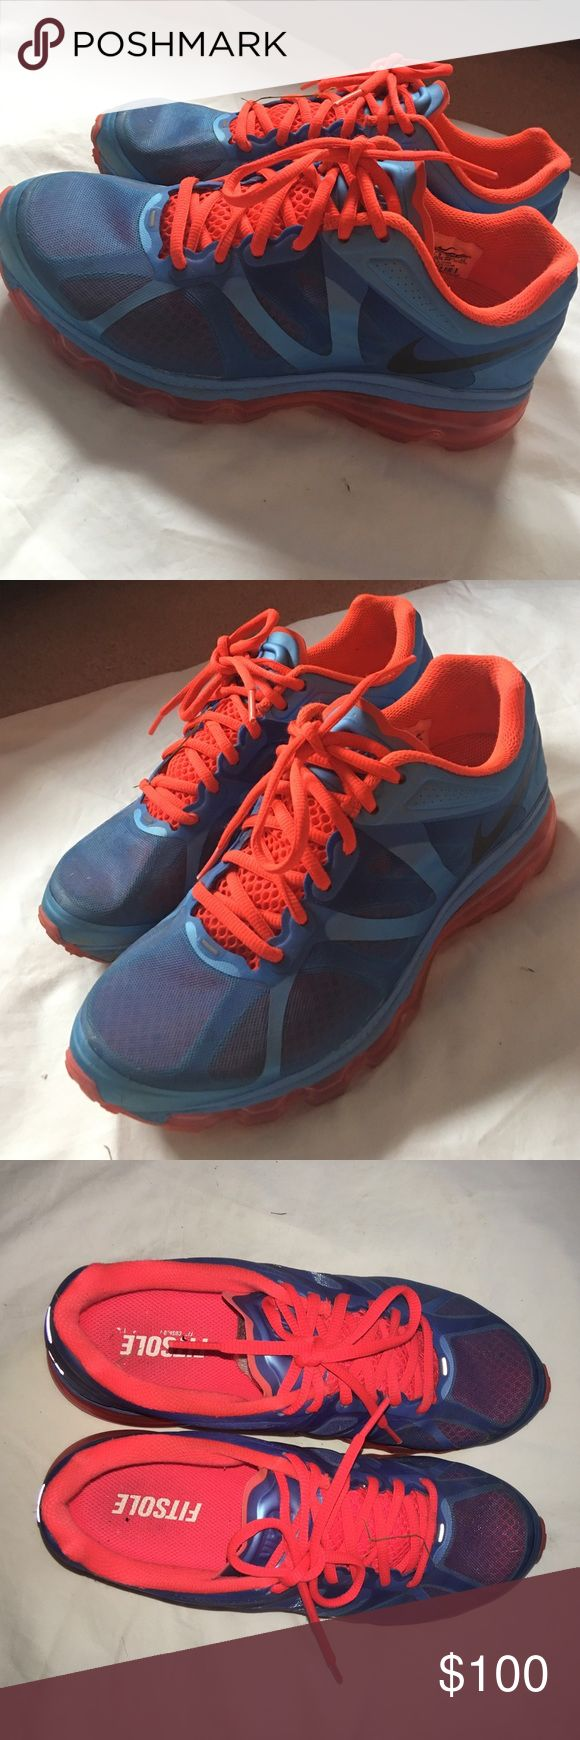 Nike air max sneakers LIKE NEW Nike air max sneakers size 8. Extremely comfy. Worn only a couple times. Normally $178 Nike Shoes Sneakers